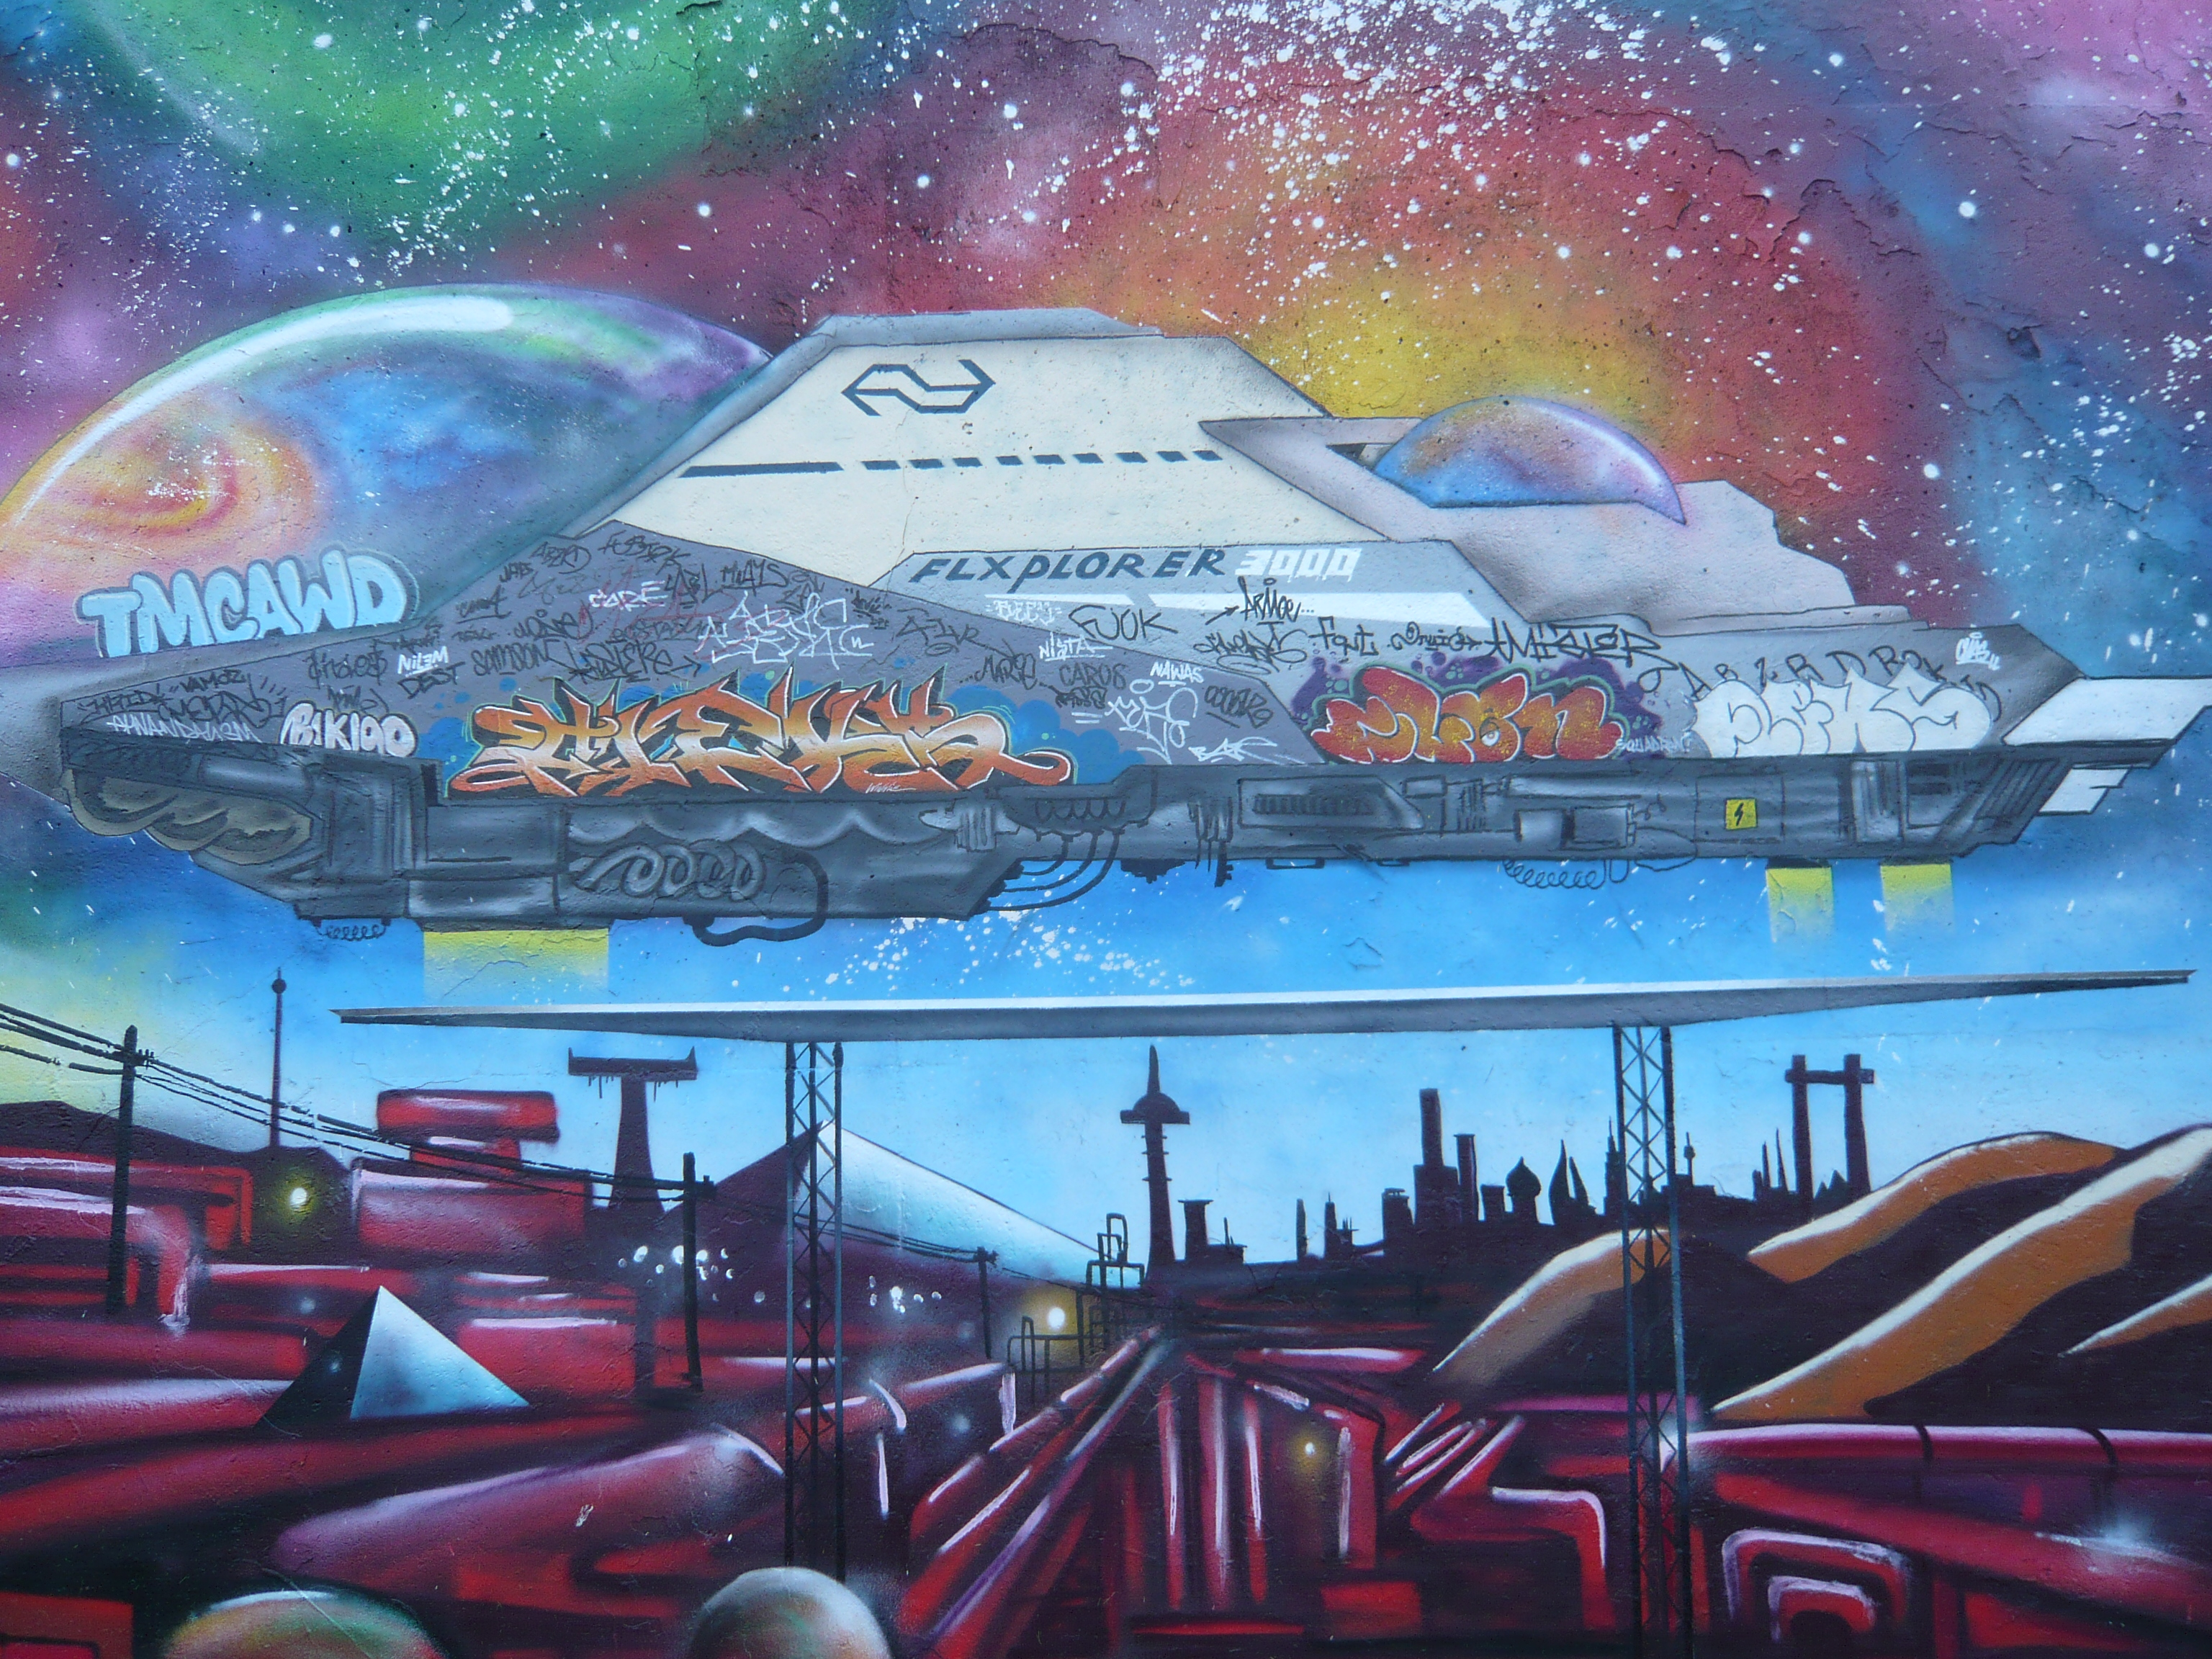 lonely-planet-graffiti-art-spaceship-Eindhoven-Berenkuil